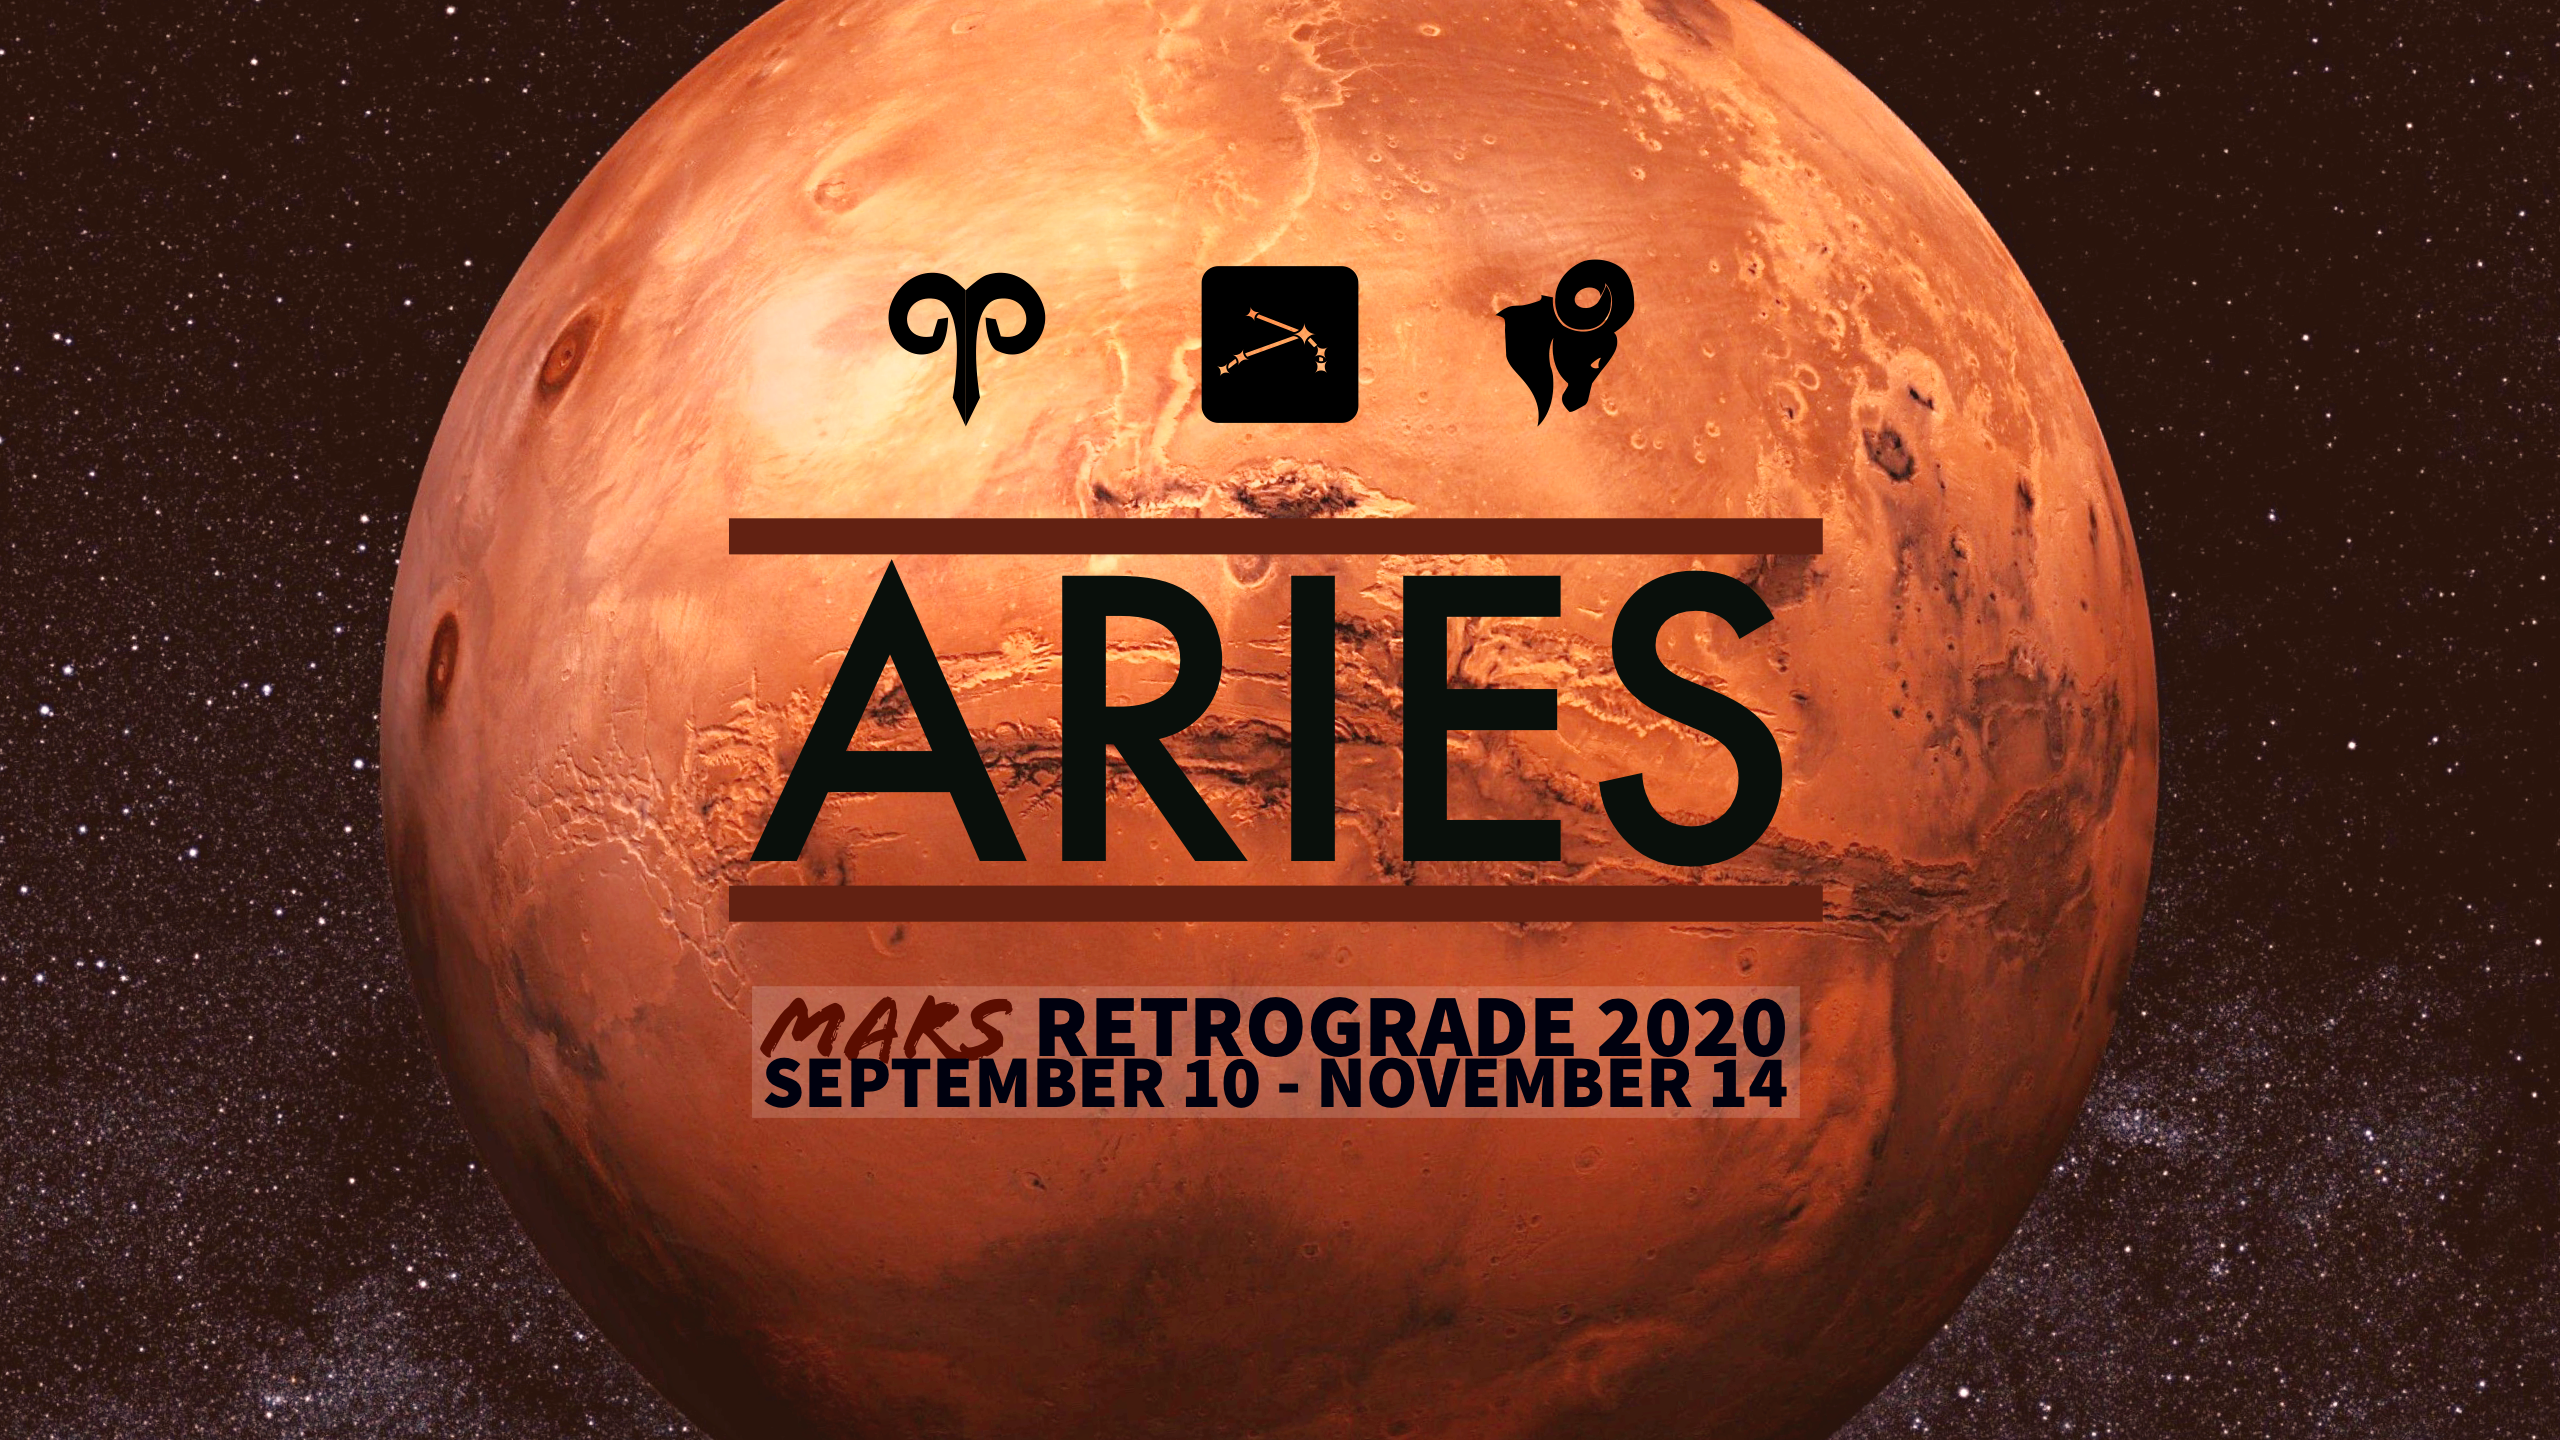 2020 Mars Retrograde:01 Aries